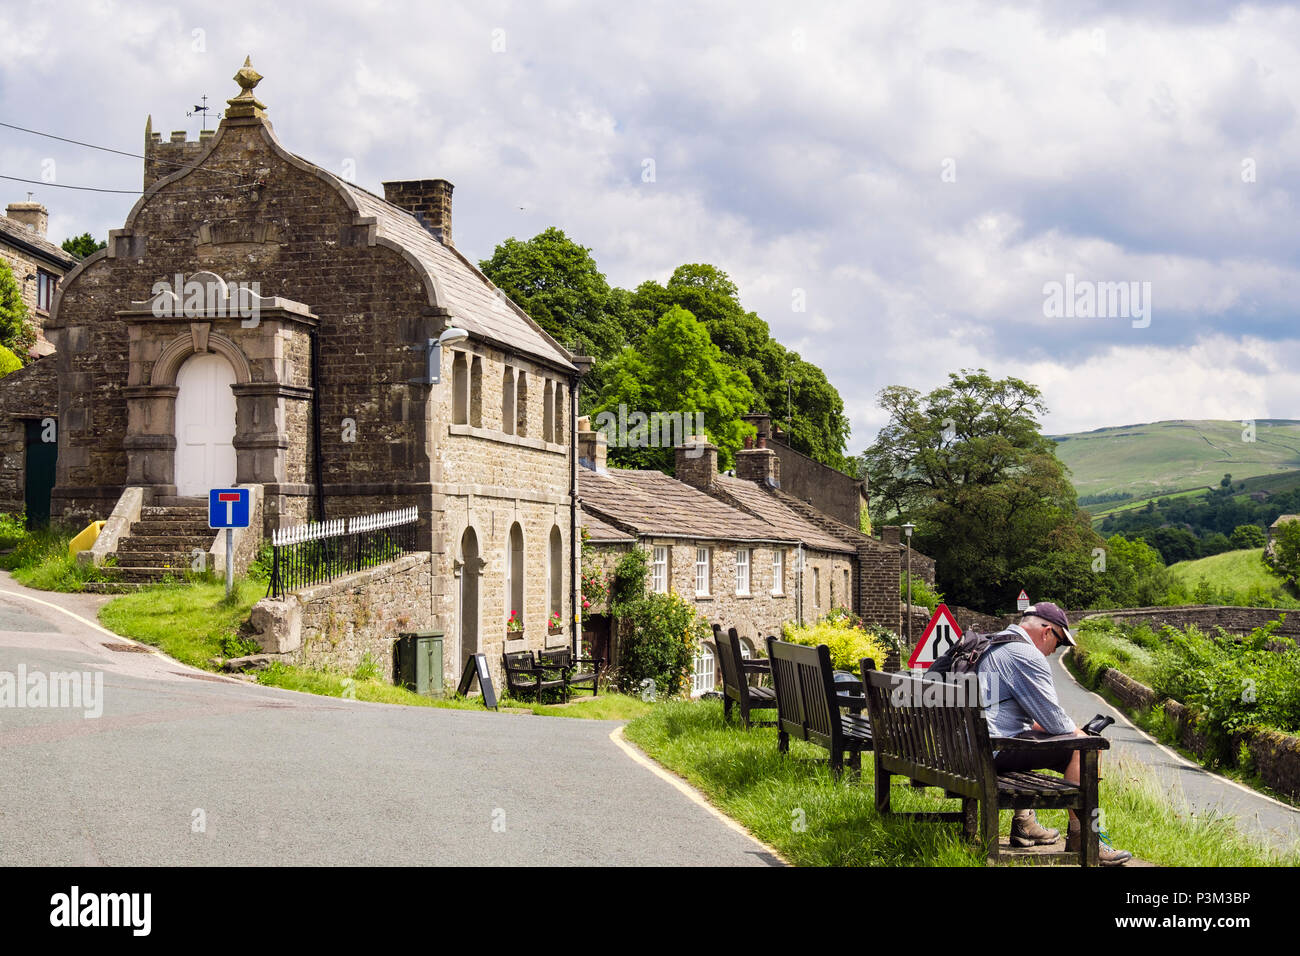 Walker resting on a bench by Muker Literary Institute in Yorkshire Dales National Park village of Muker Swaledale North Yorkshire England UK Britain - Stock Image